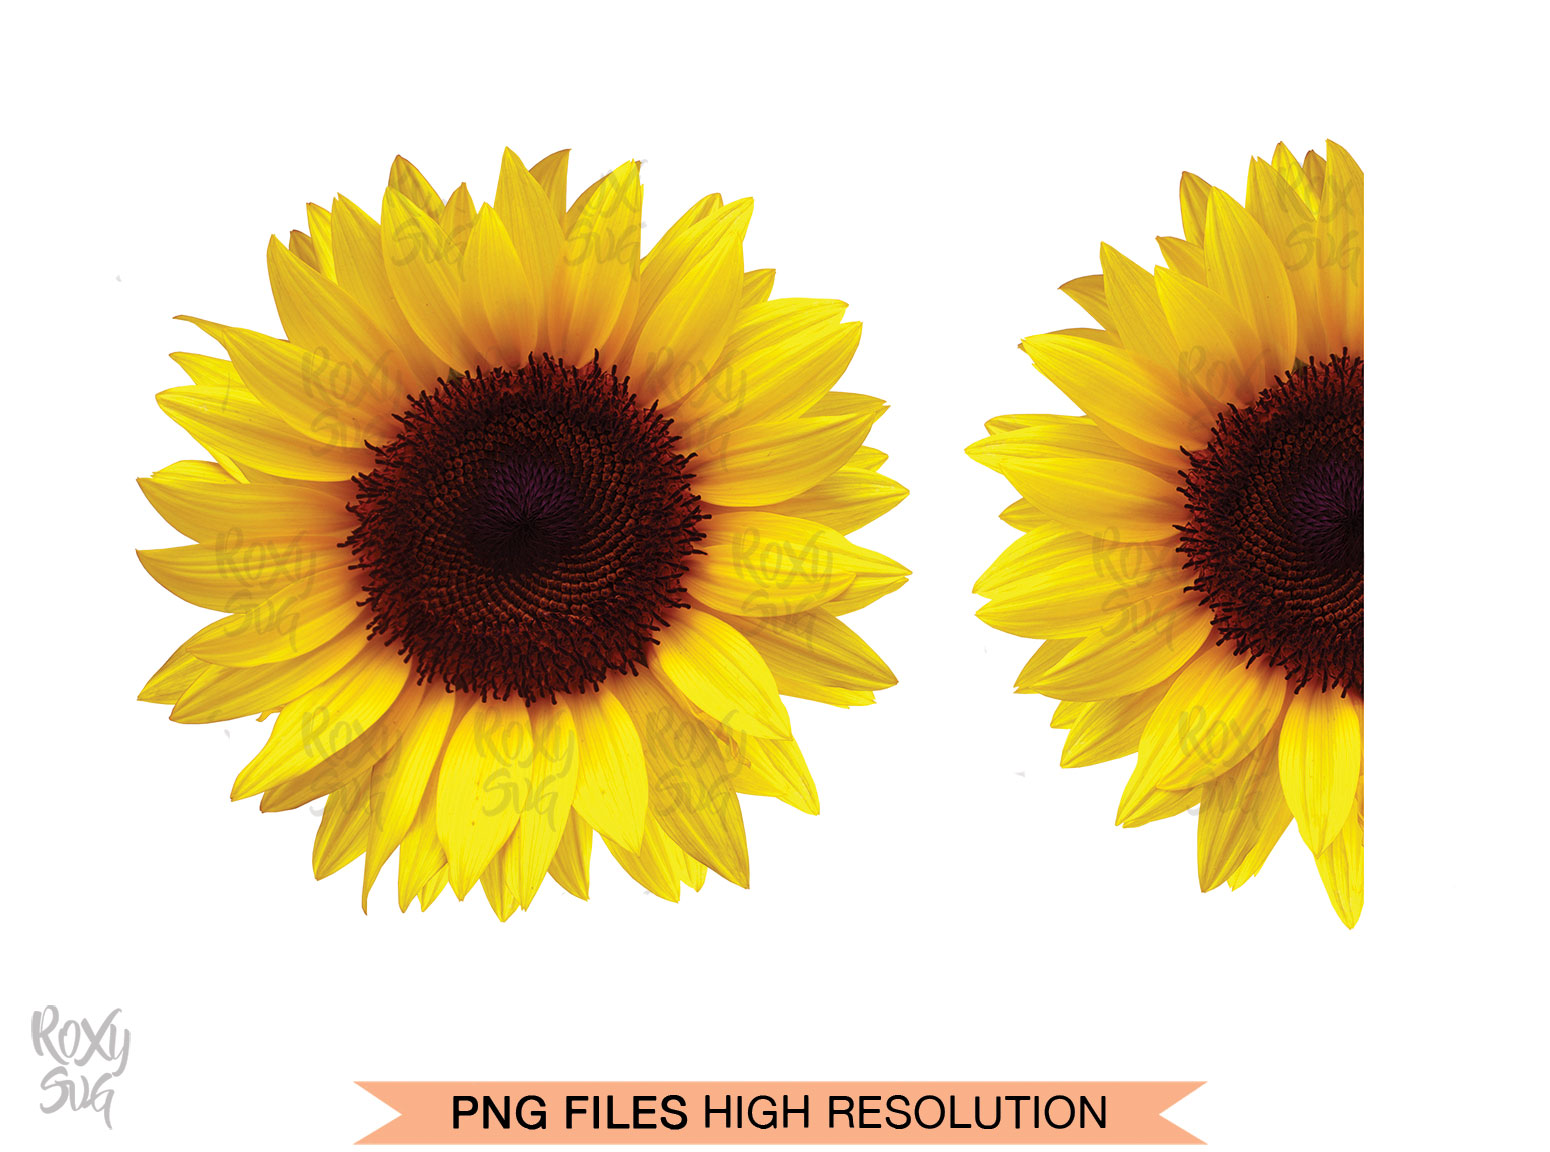 Sunflower Clipart (Graphic) by roxysvg26 · Creative Fabrica